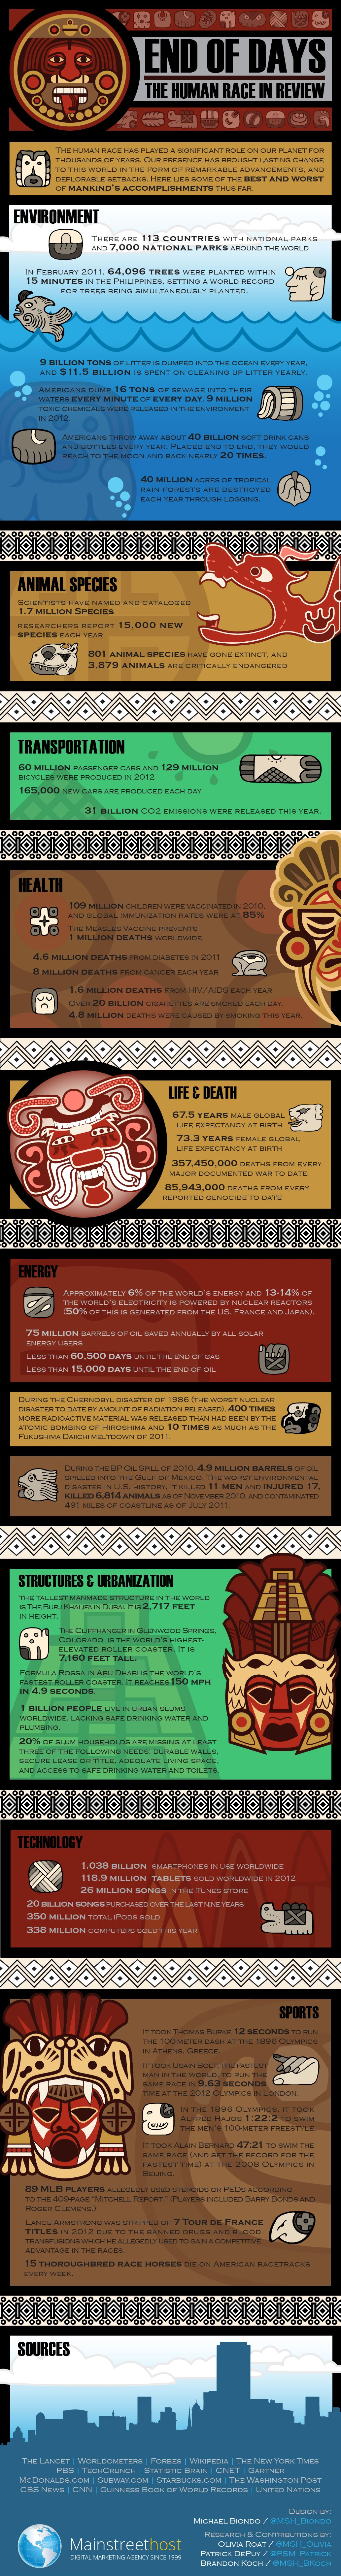 End Of Days Infographic